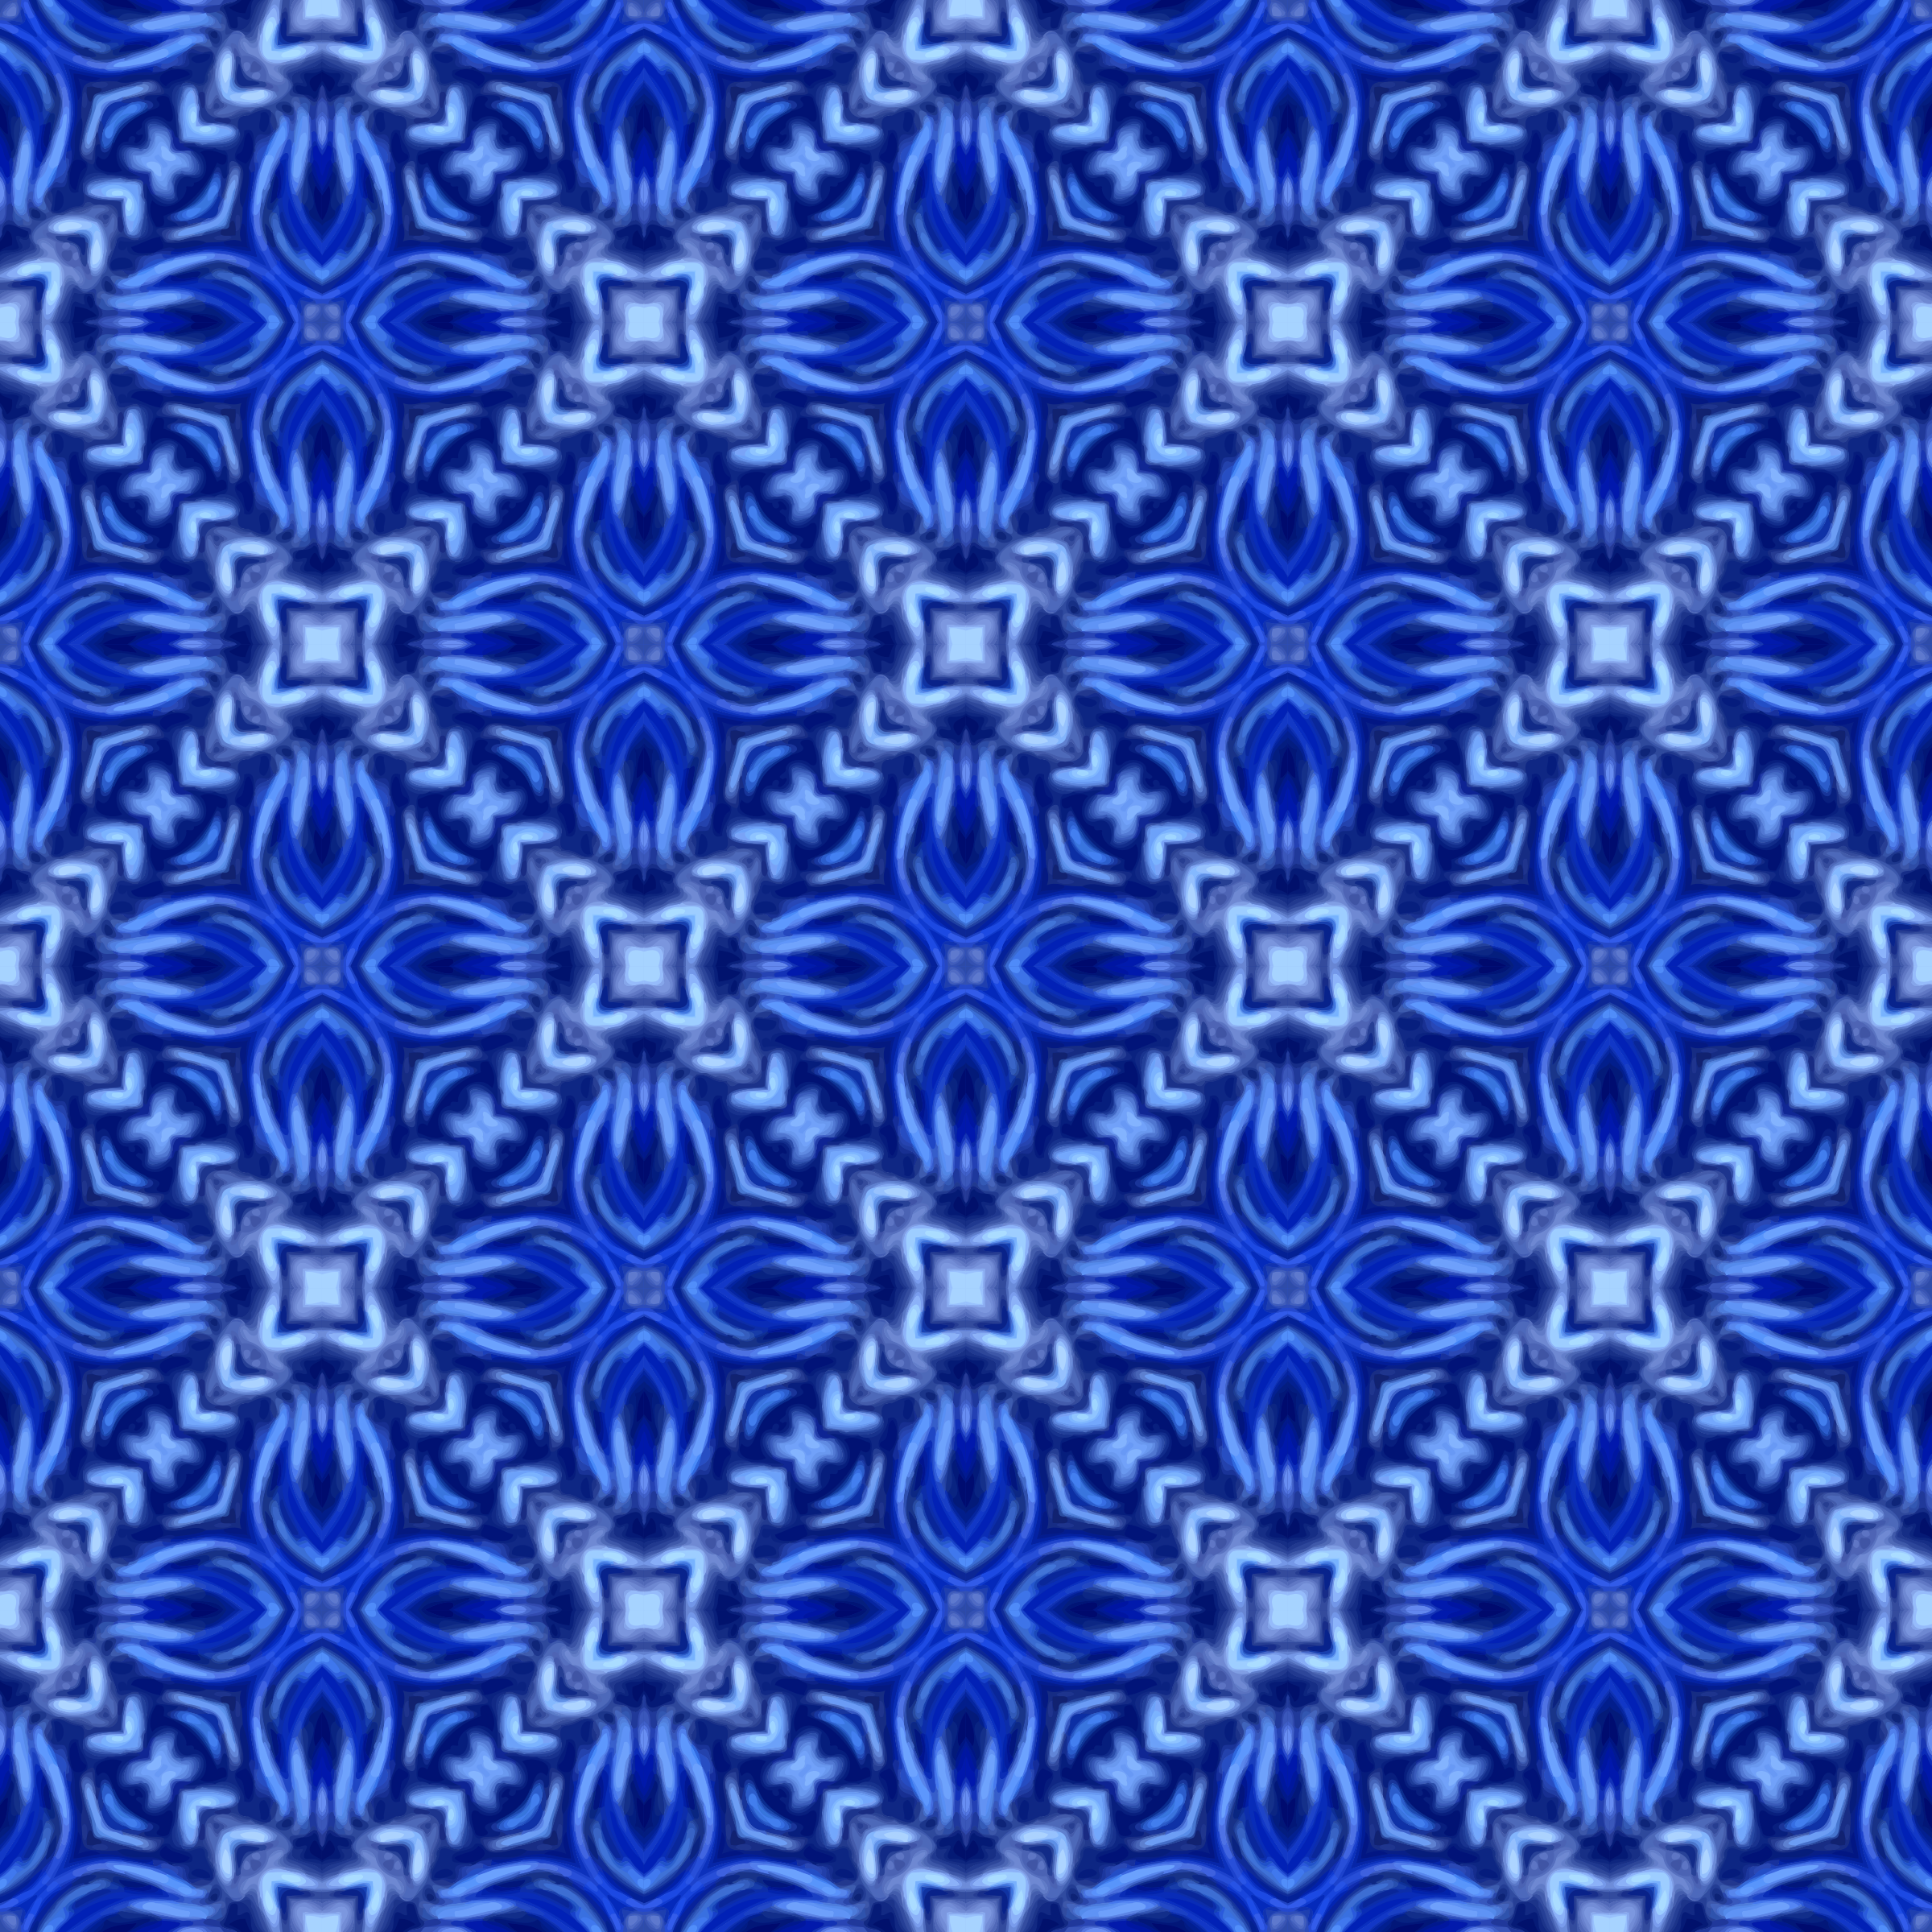 Background pattern 162 (colour 5) by Firkin